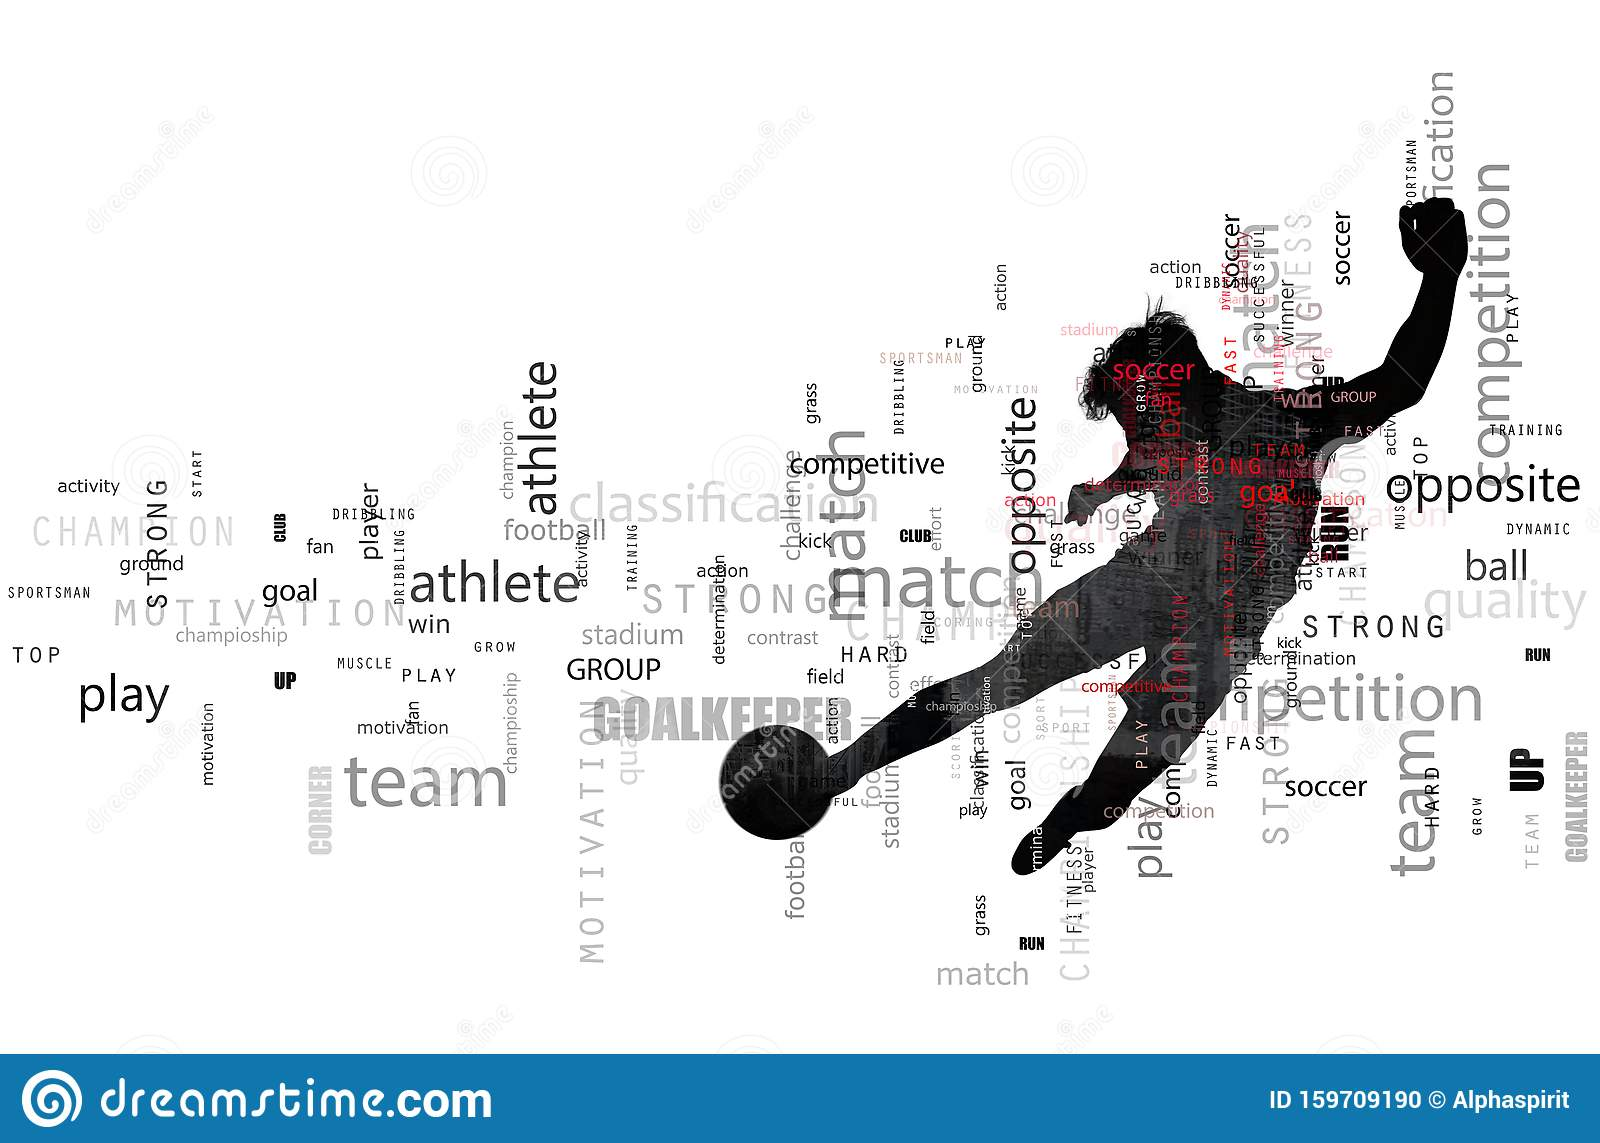 Football scene of a soccer player silhouette in action. Text effect in overlay with the most used terms. Abstract